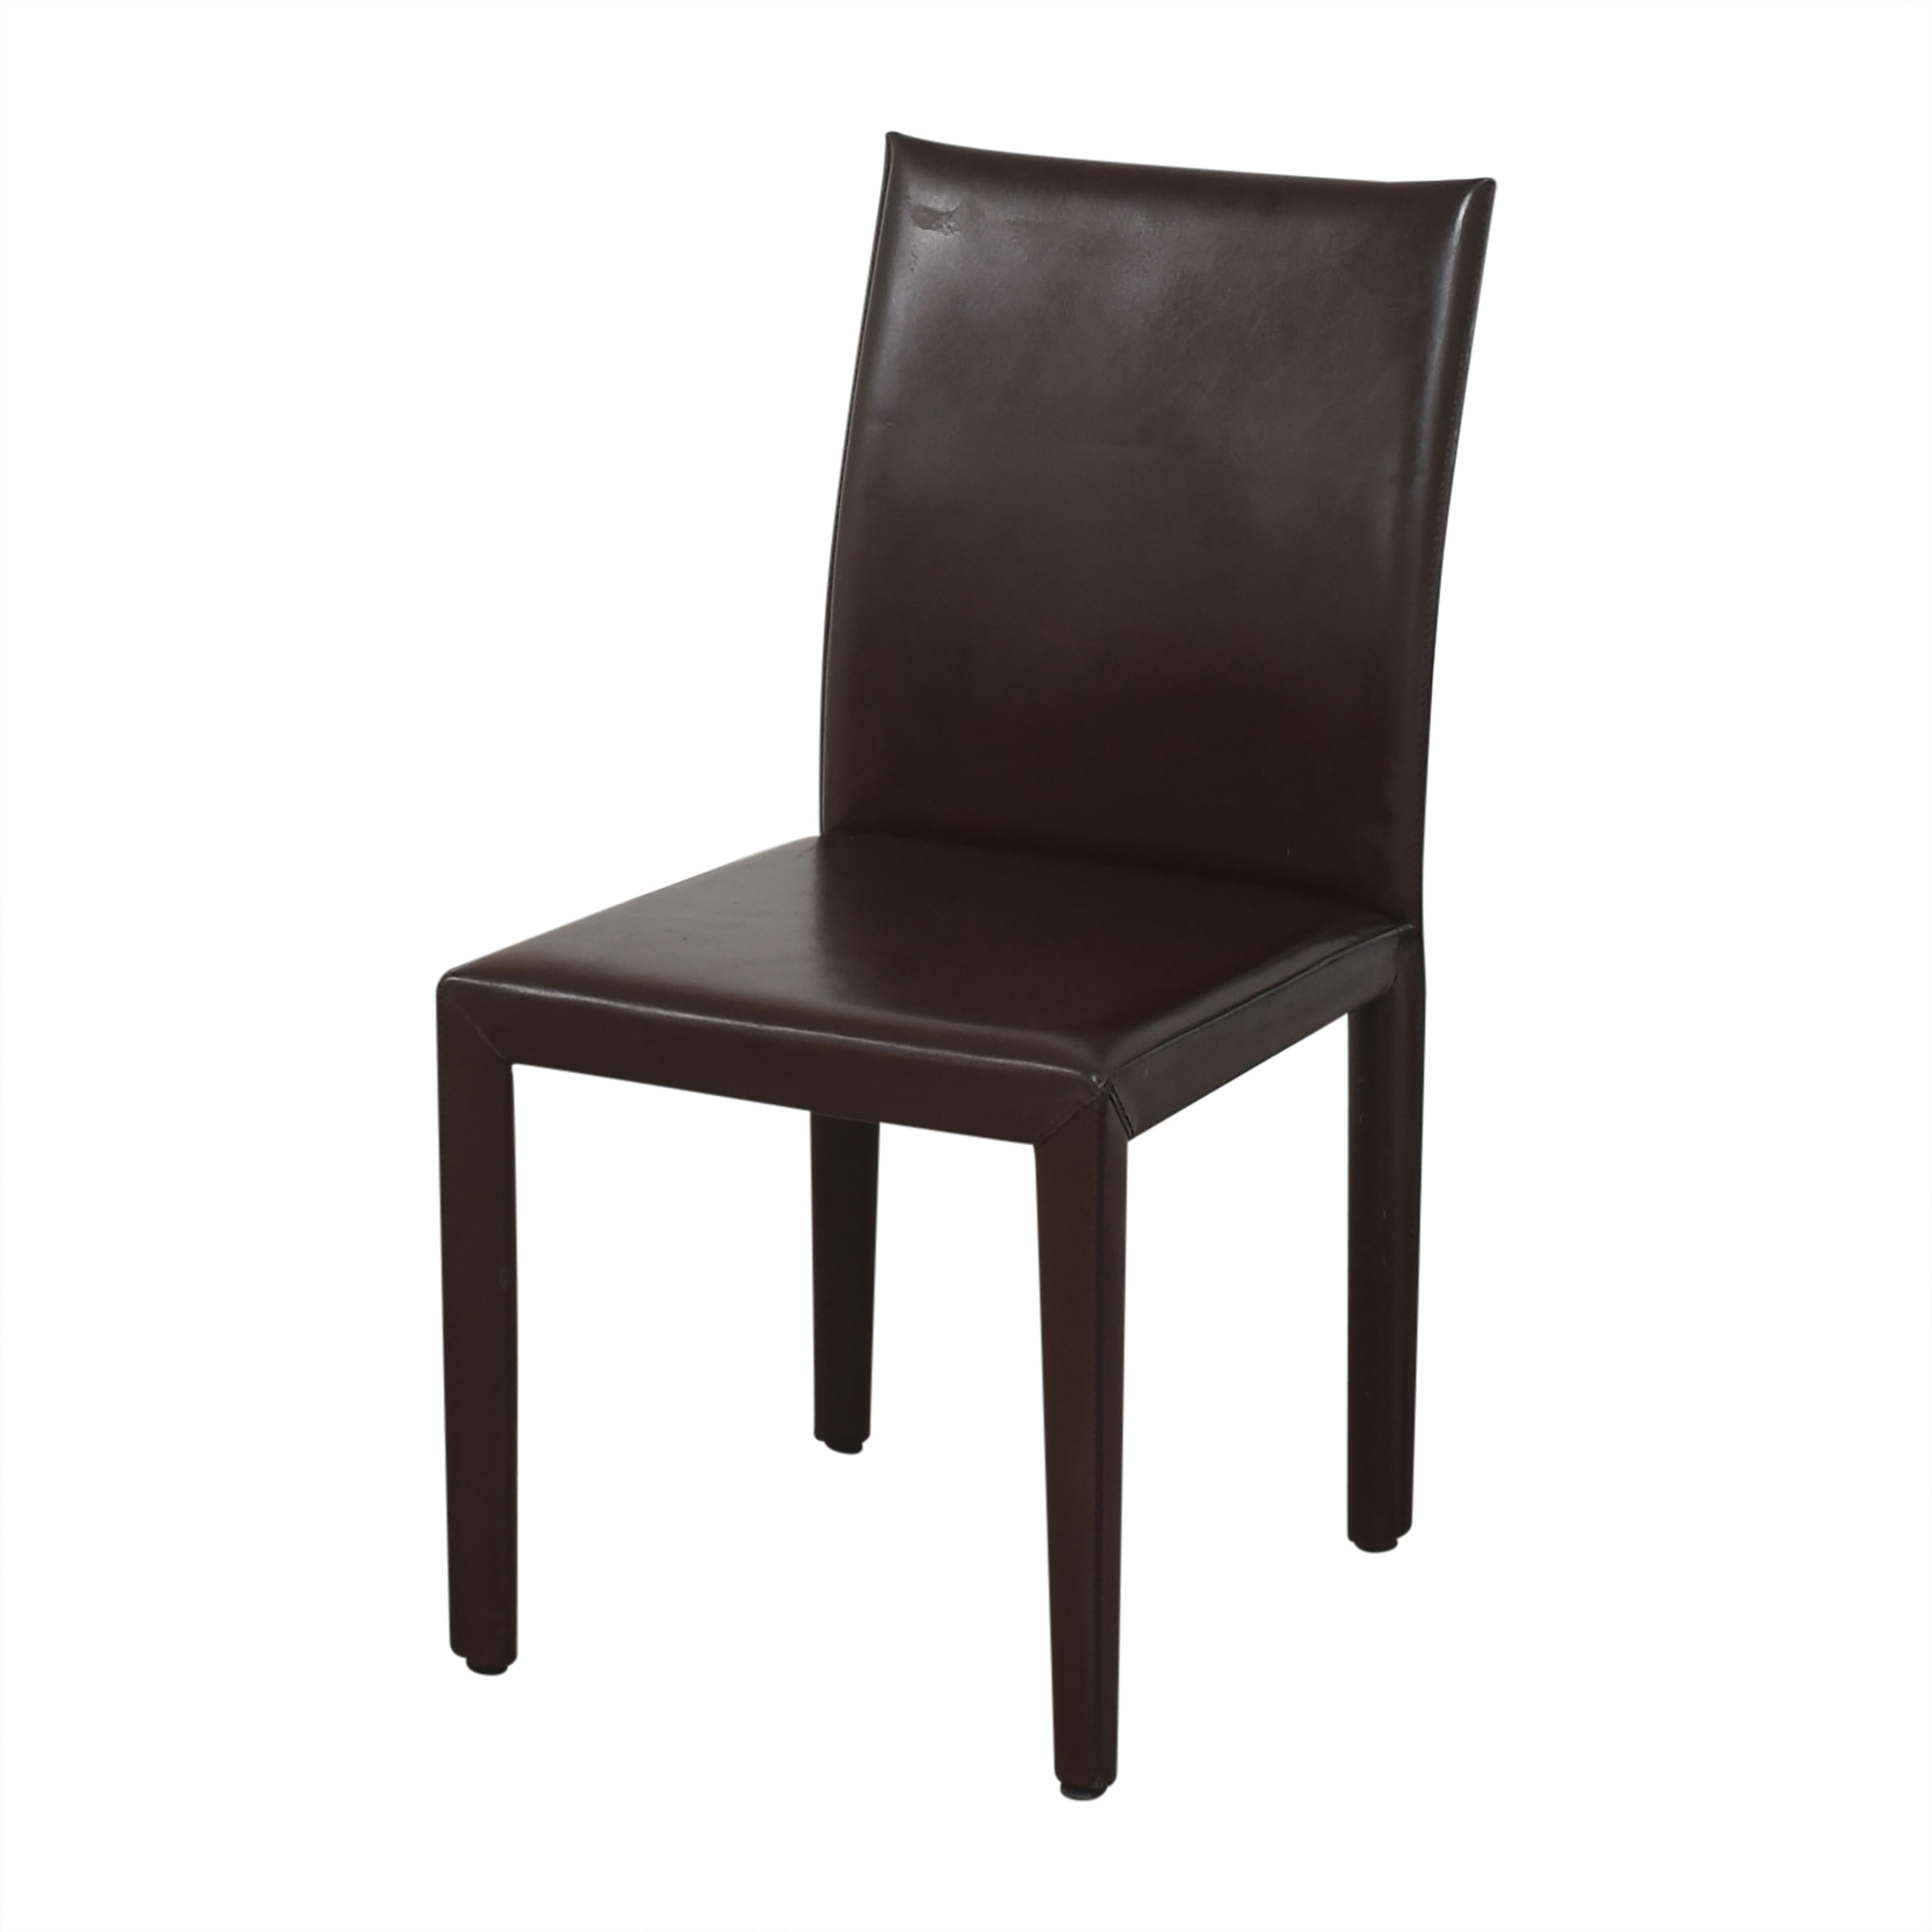 Crate & Barrel Folio Dining Chairs by Maria Yee Crate & Barrel